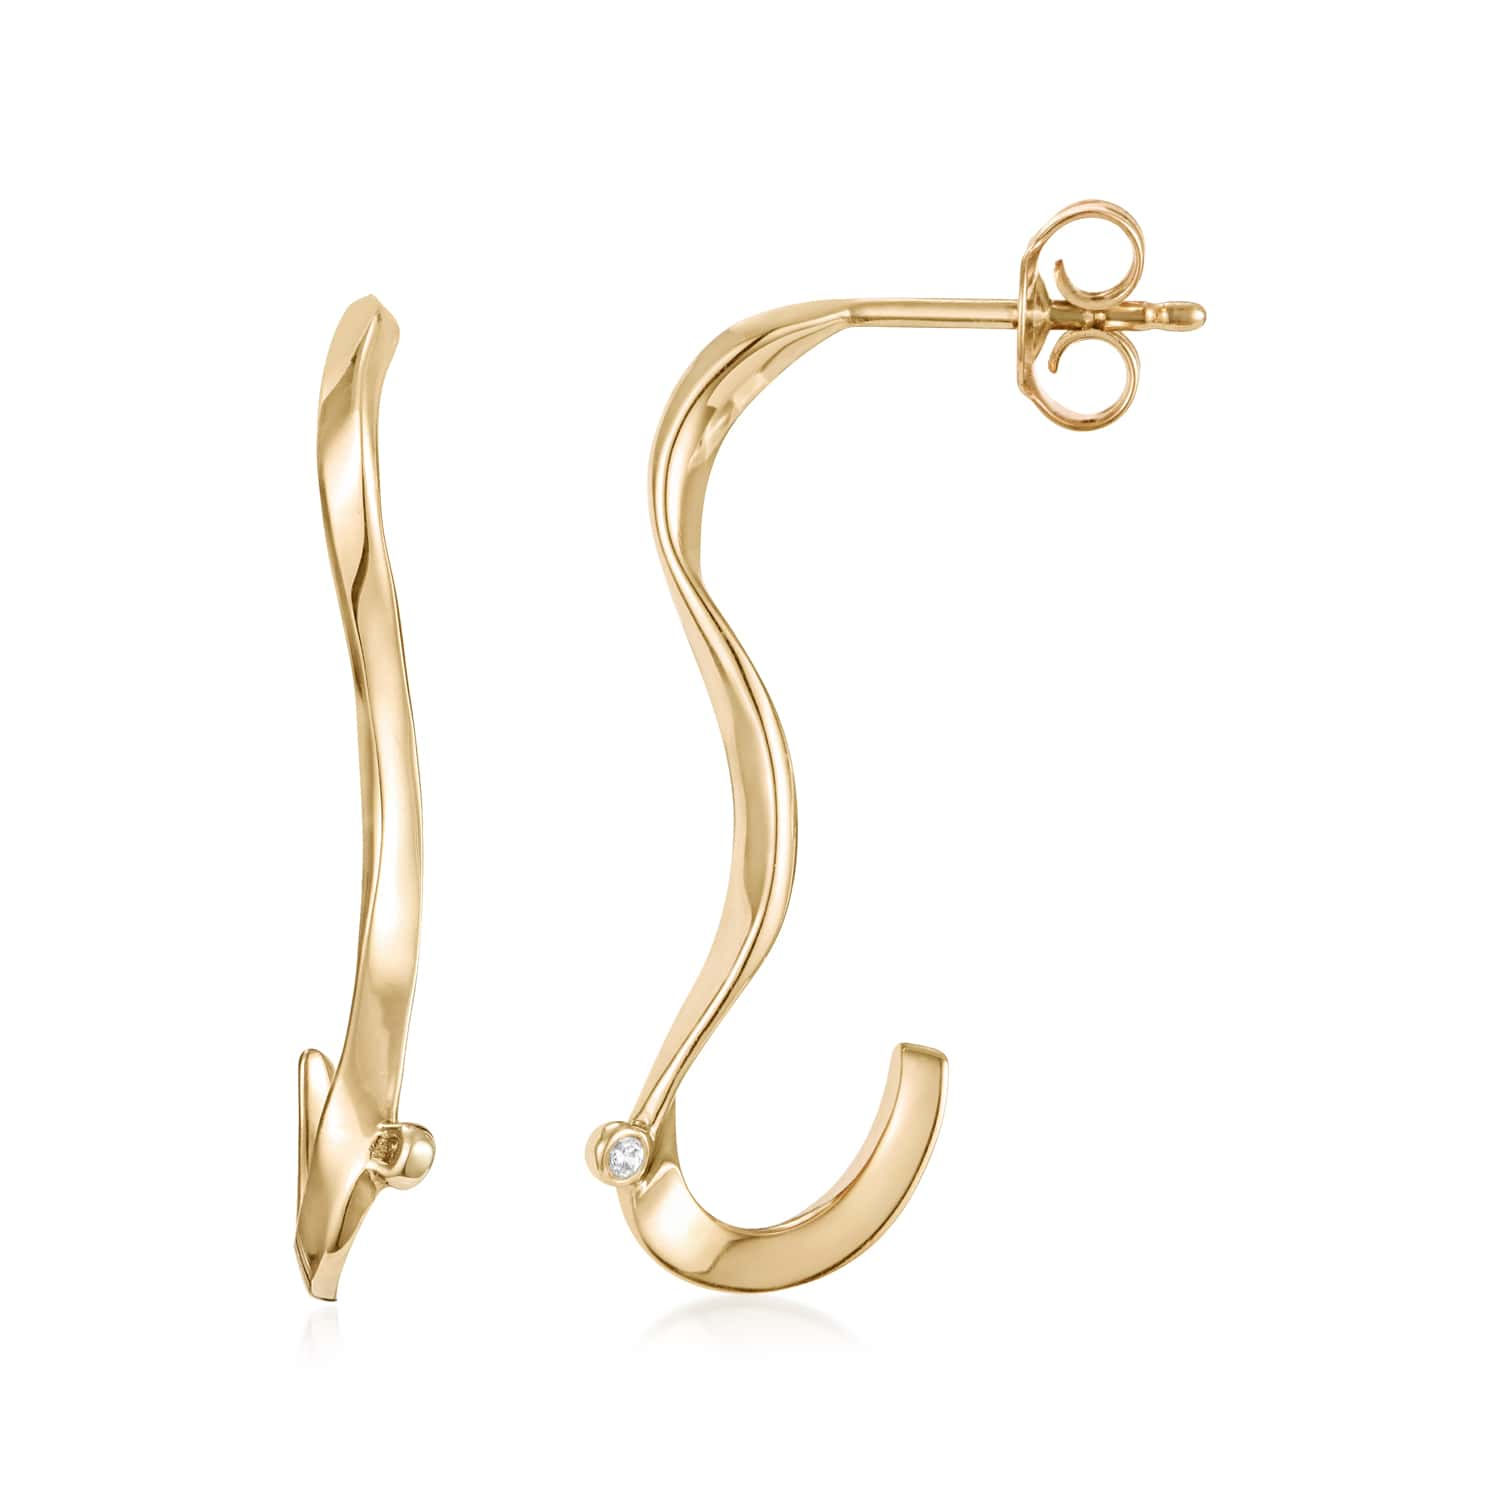 Marque Ripple Stud Earrings